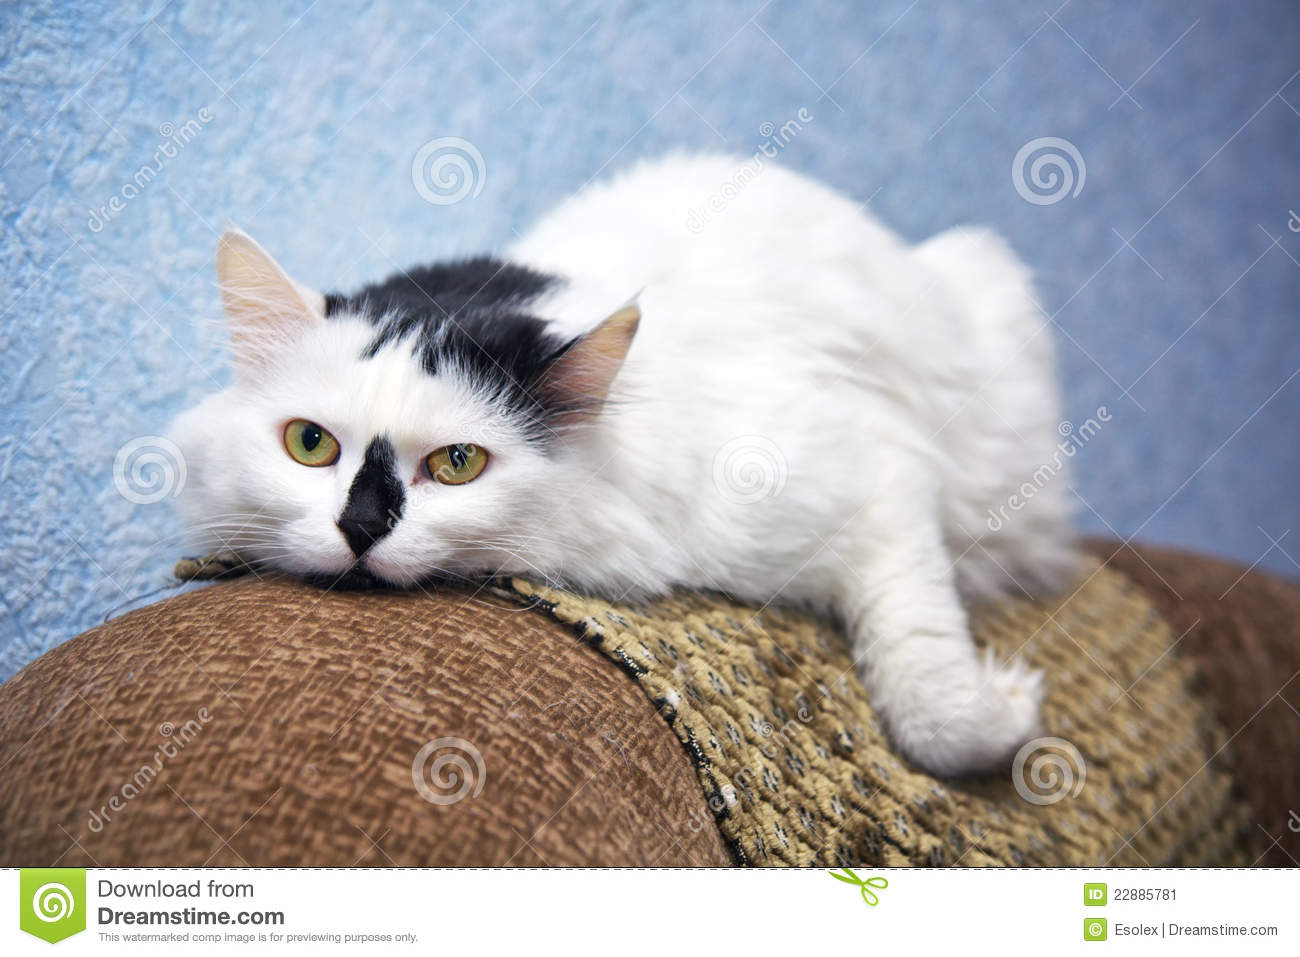 best sofa for cats owners ashley alenya 2 pc sectional laf loveseat raf blue eyes kitty on stock photo cartoondealer